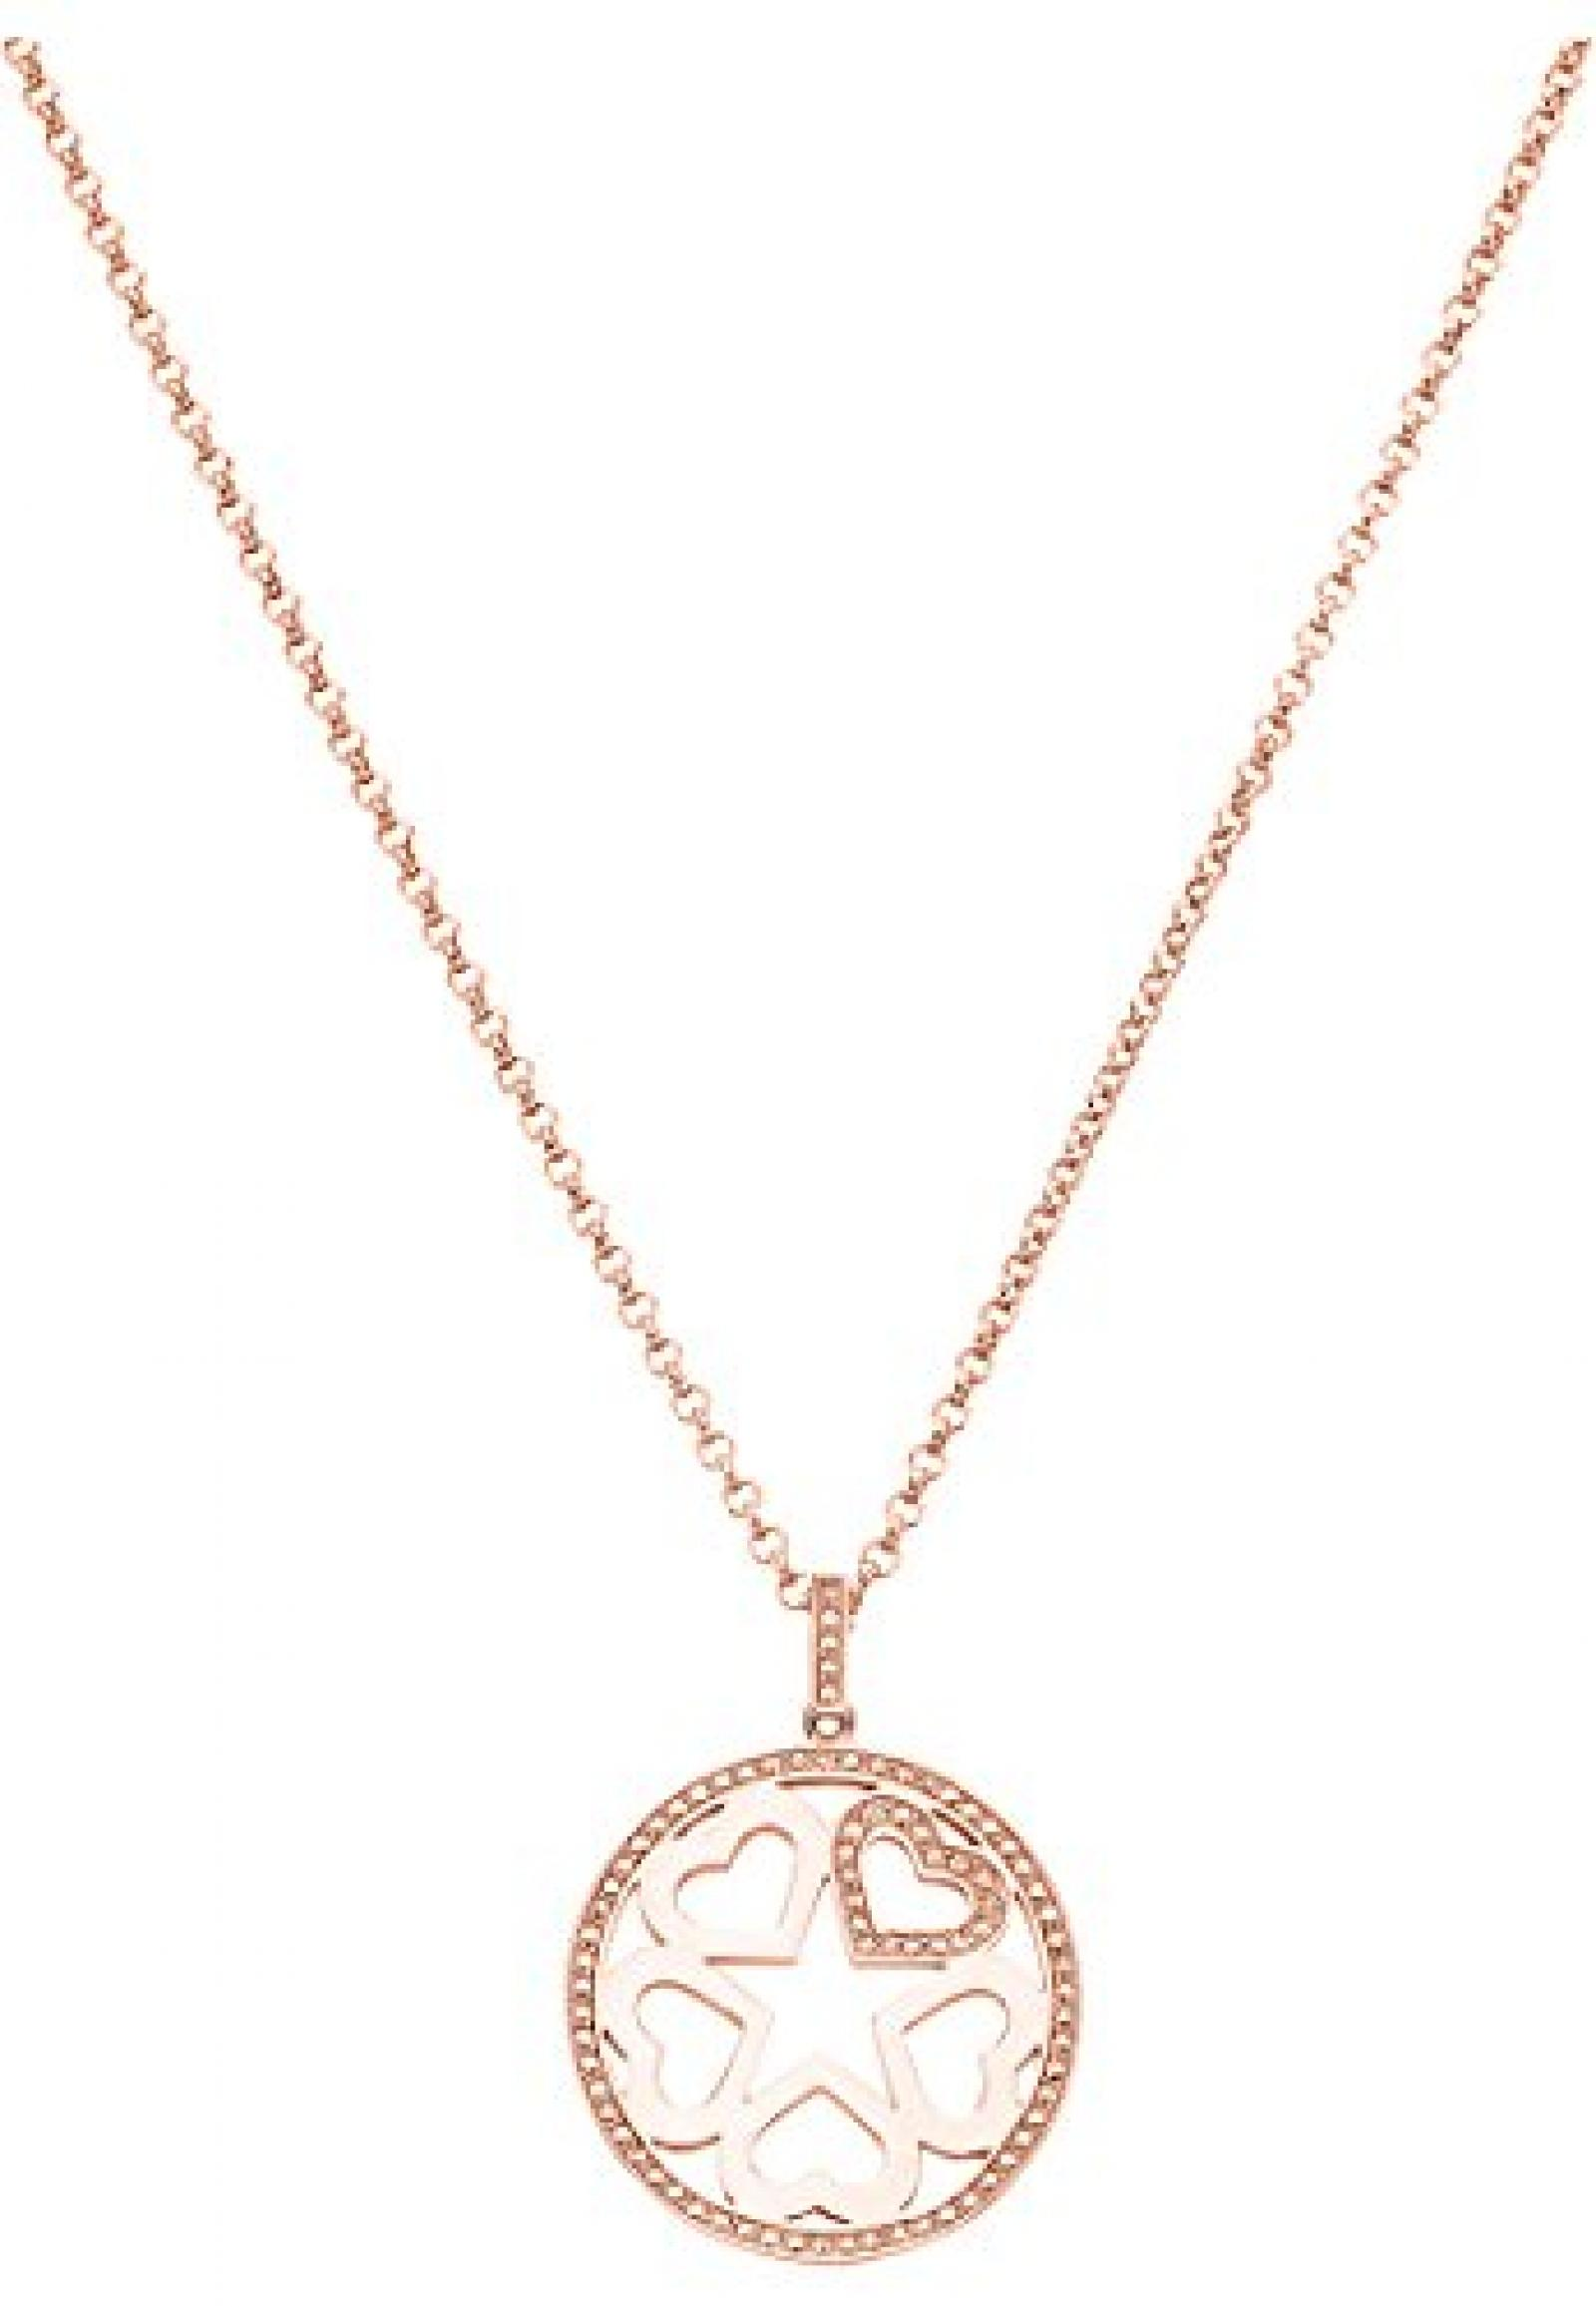 JETTE Magic Passion Damen-Collier JETTE Magic Love Tag Metall 81 Kristall roségold, One Size